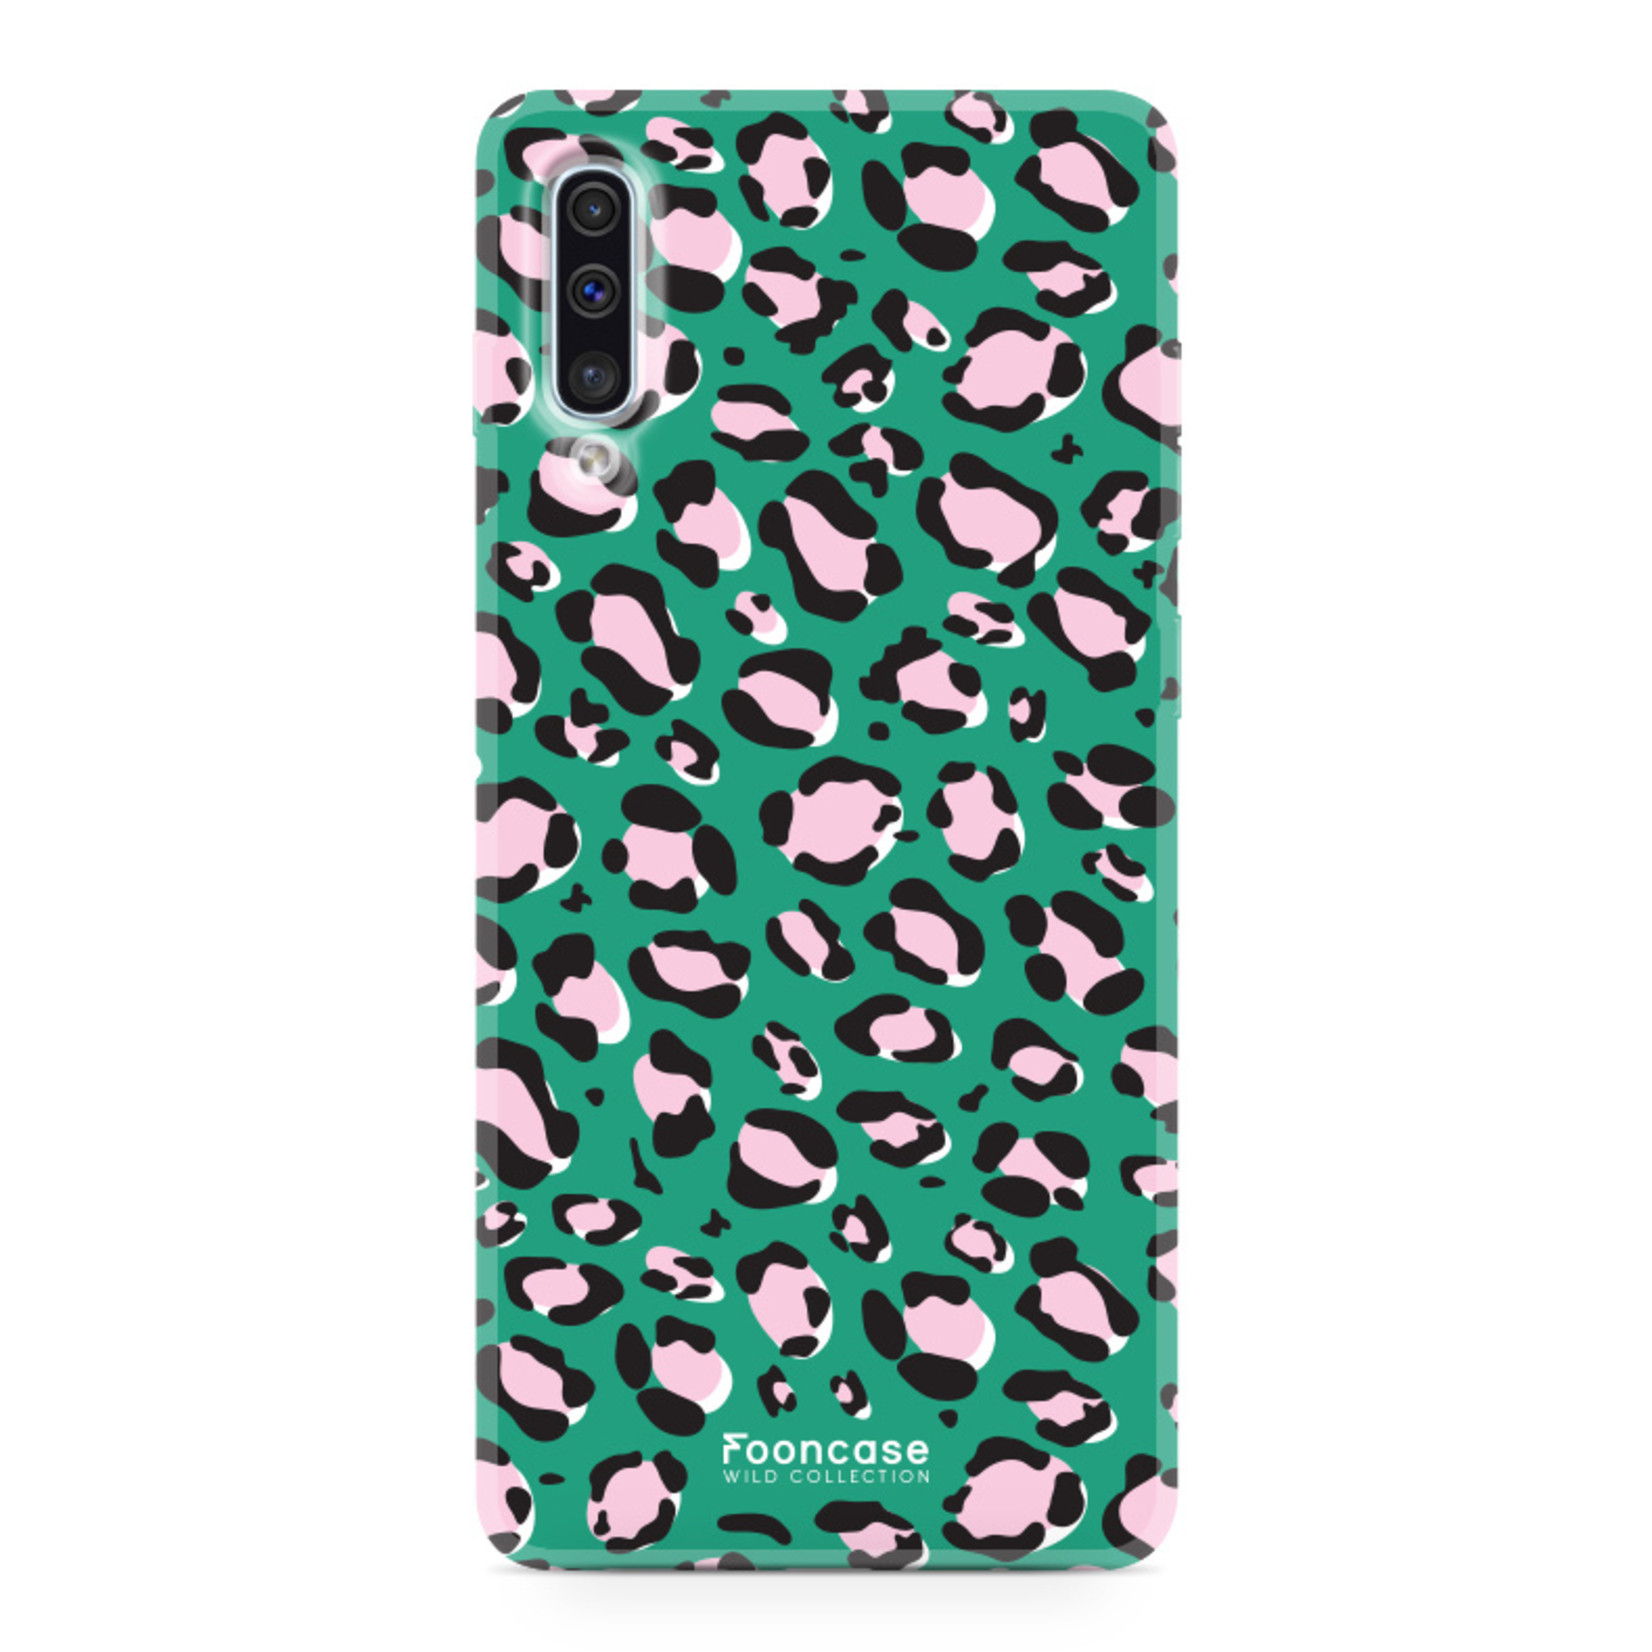 Samsung Galaxy A70 hoesje TPU Soft Case - Back Cover - WILD COLLECTION / Luipaard / Leopard print / Groen